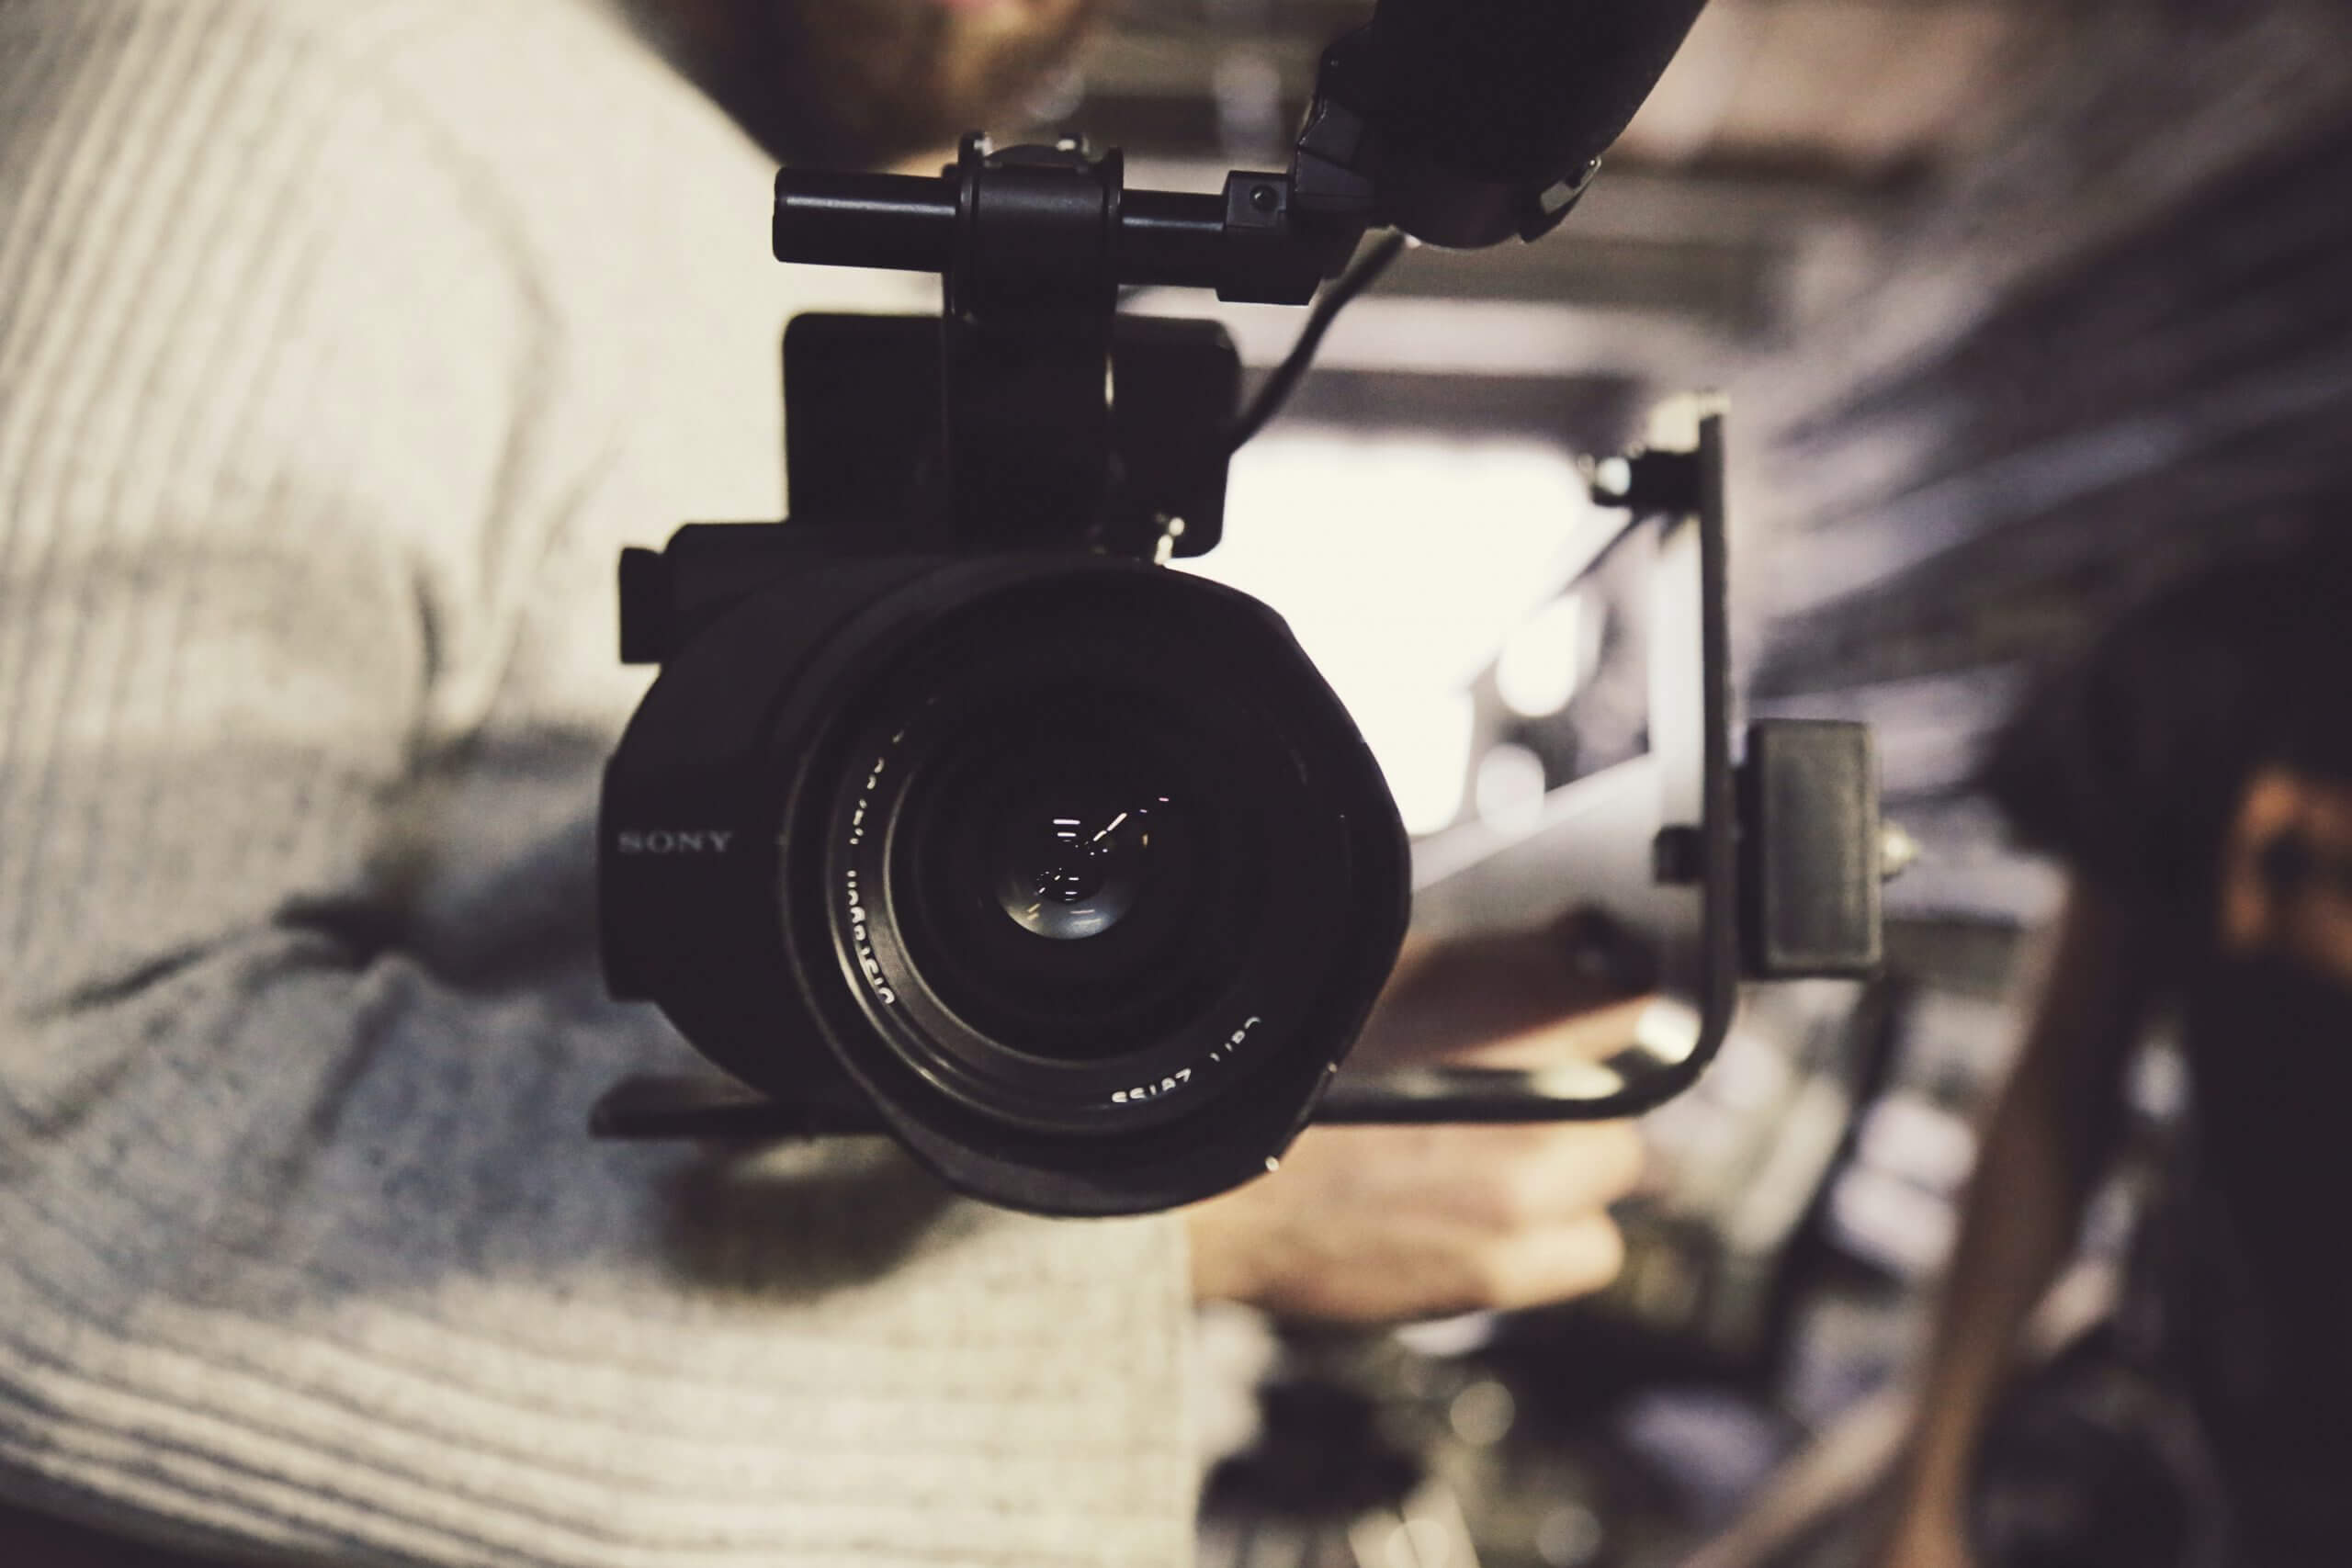 A camera pointing towards the view.